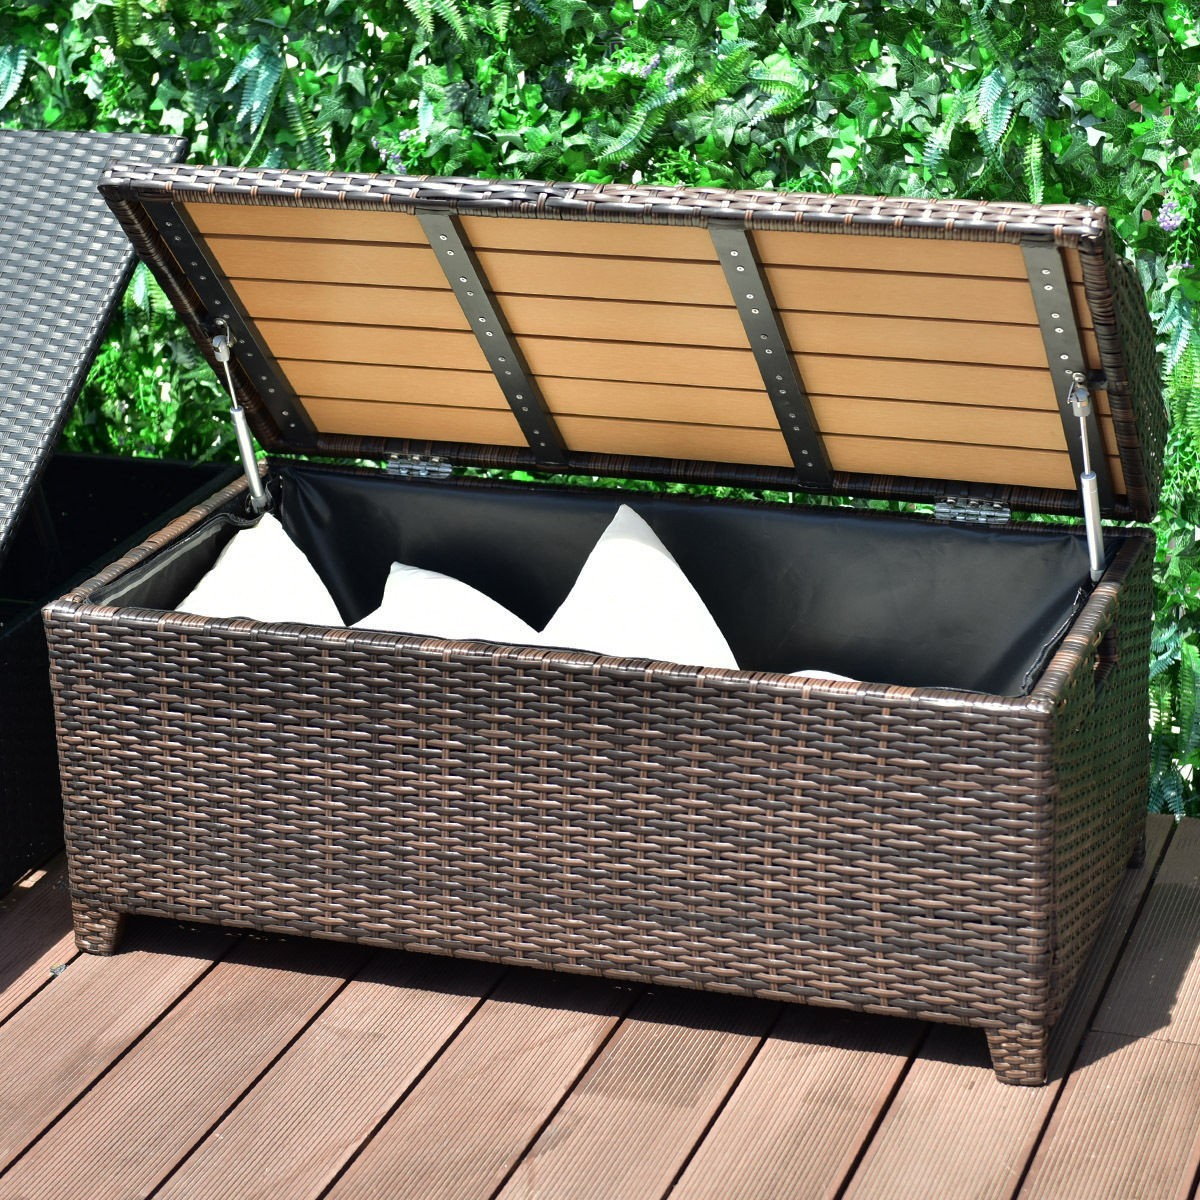 50 Gallon Patio Garden Rattan Wicker Storage Bench